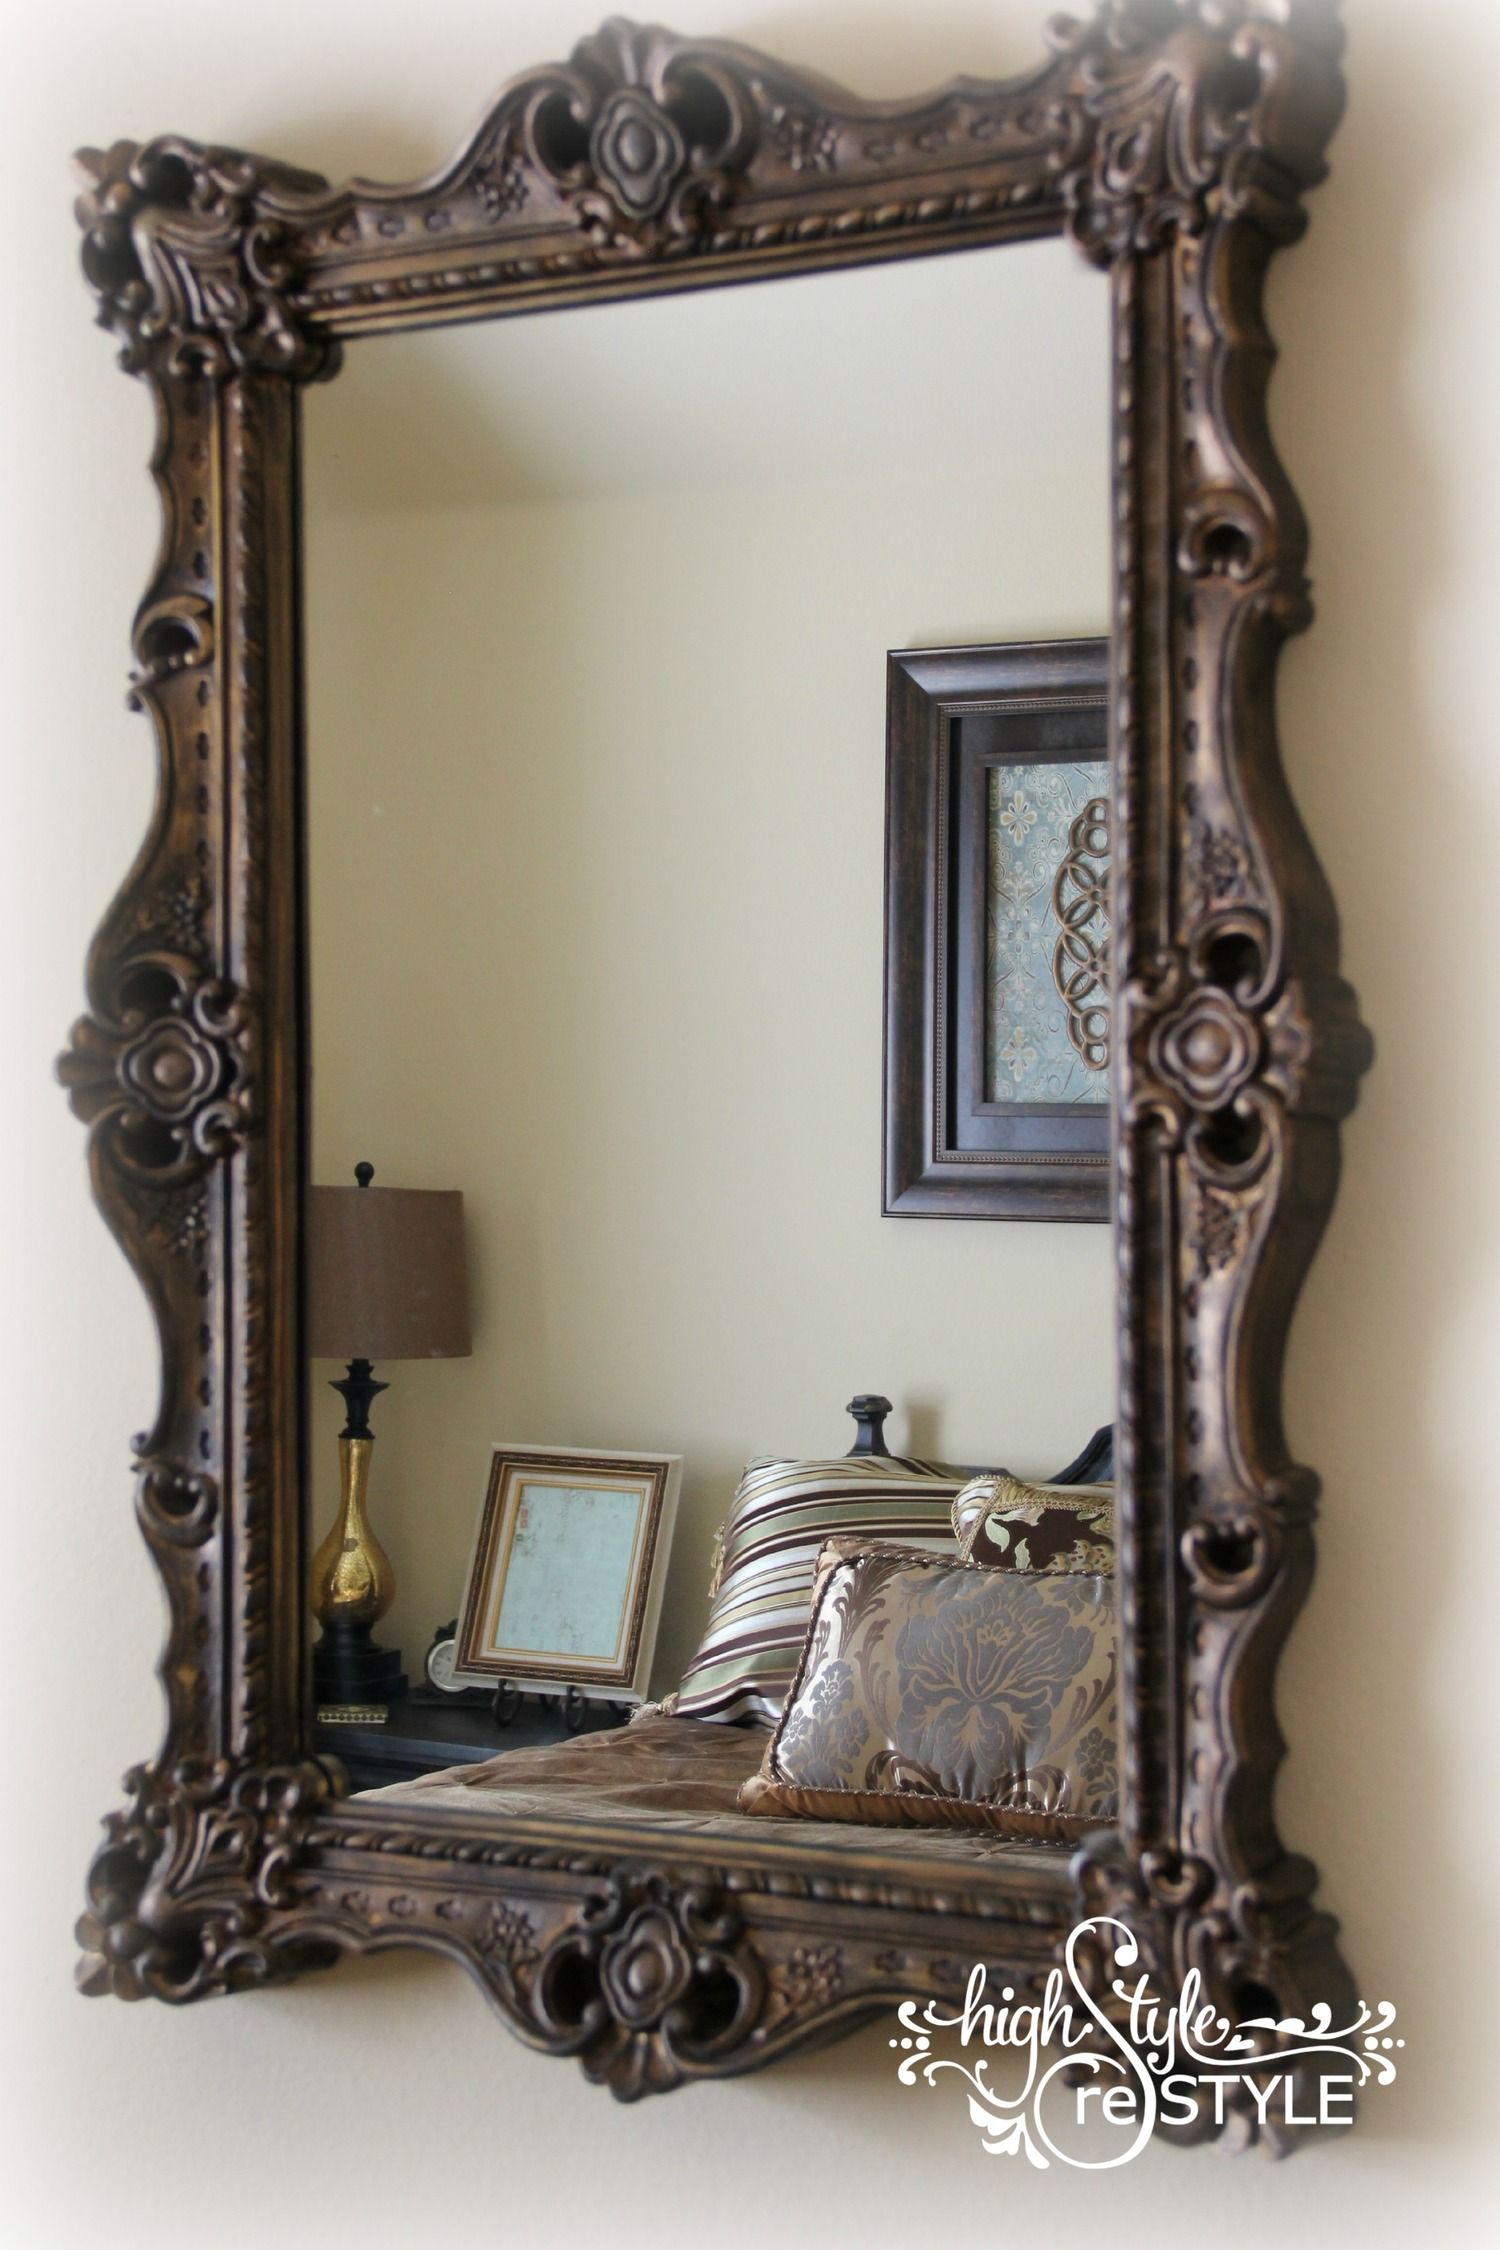 How To Update A Mirror With Paint Highstyle Restyle Gold Framed Mirror Mirror Painting Painting Mirror Frames